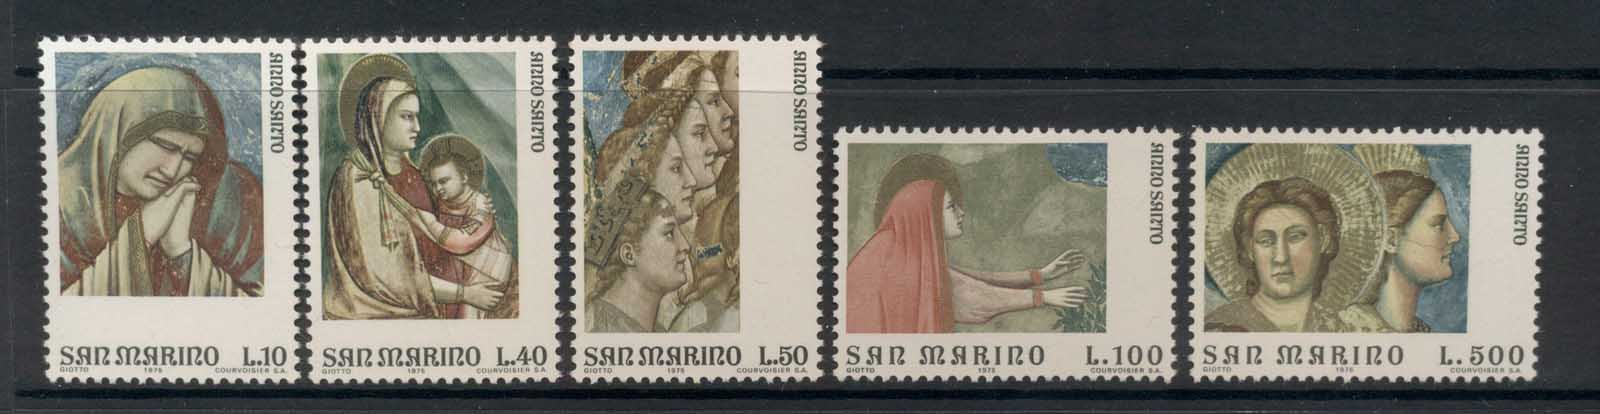 San Marino 1975 Frescoes by Giotto MLH